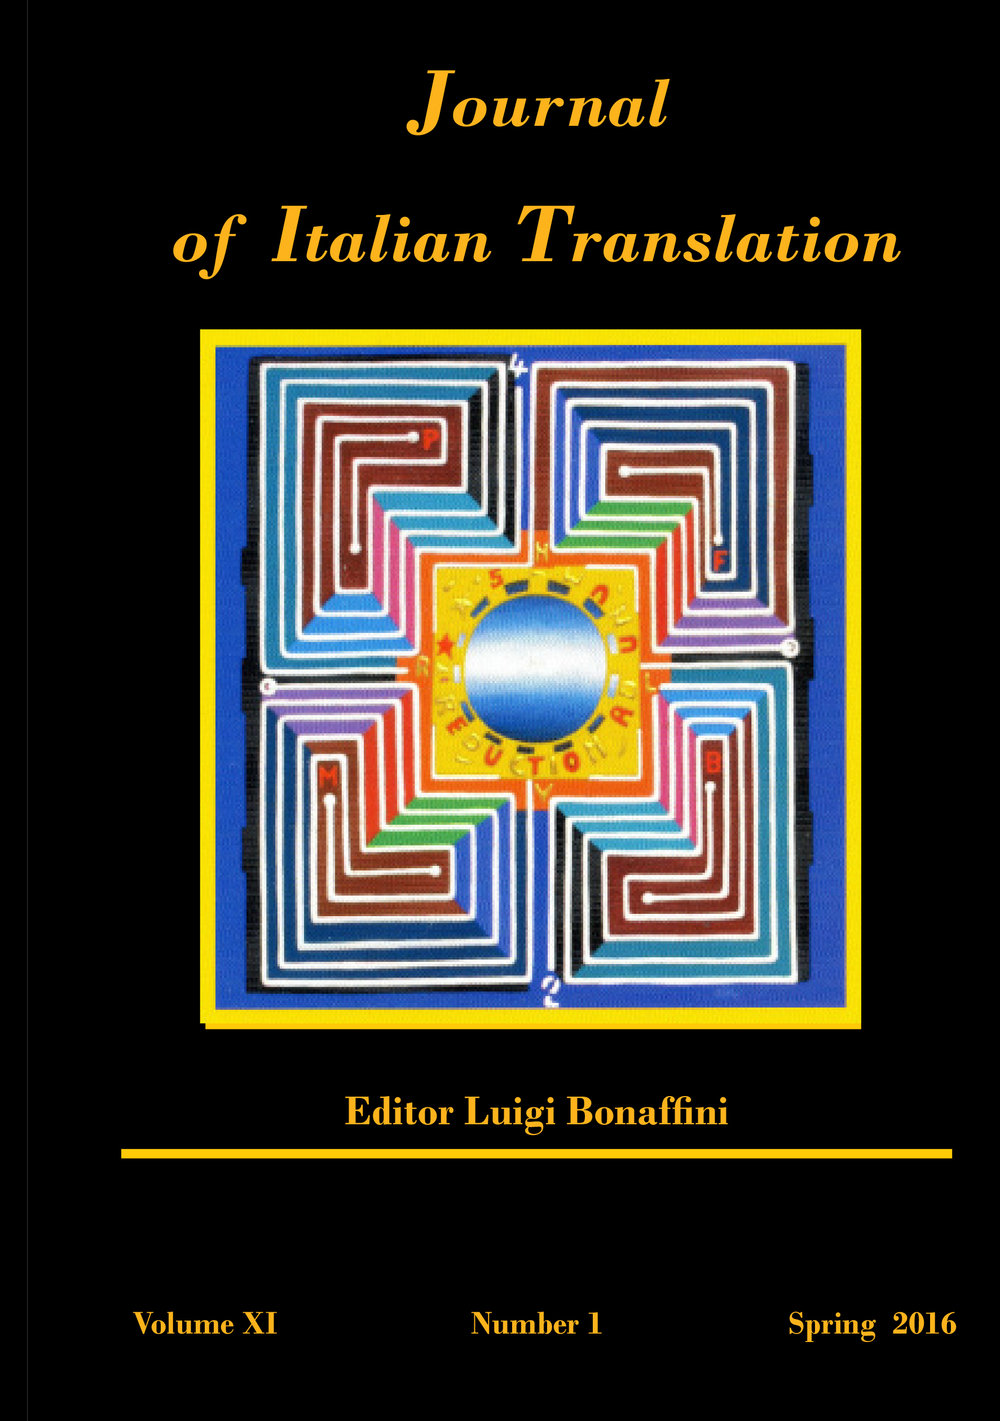 MarioFratti Refrigerators - Journal of Italian Translation (dragged).jpg